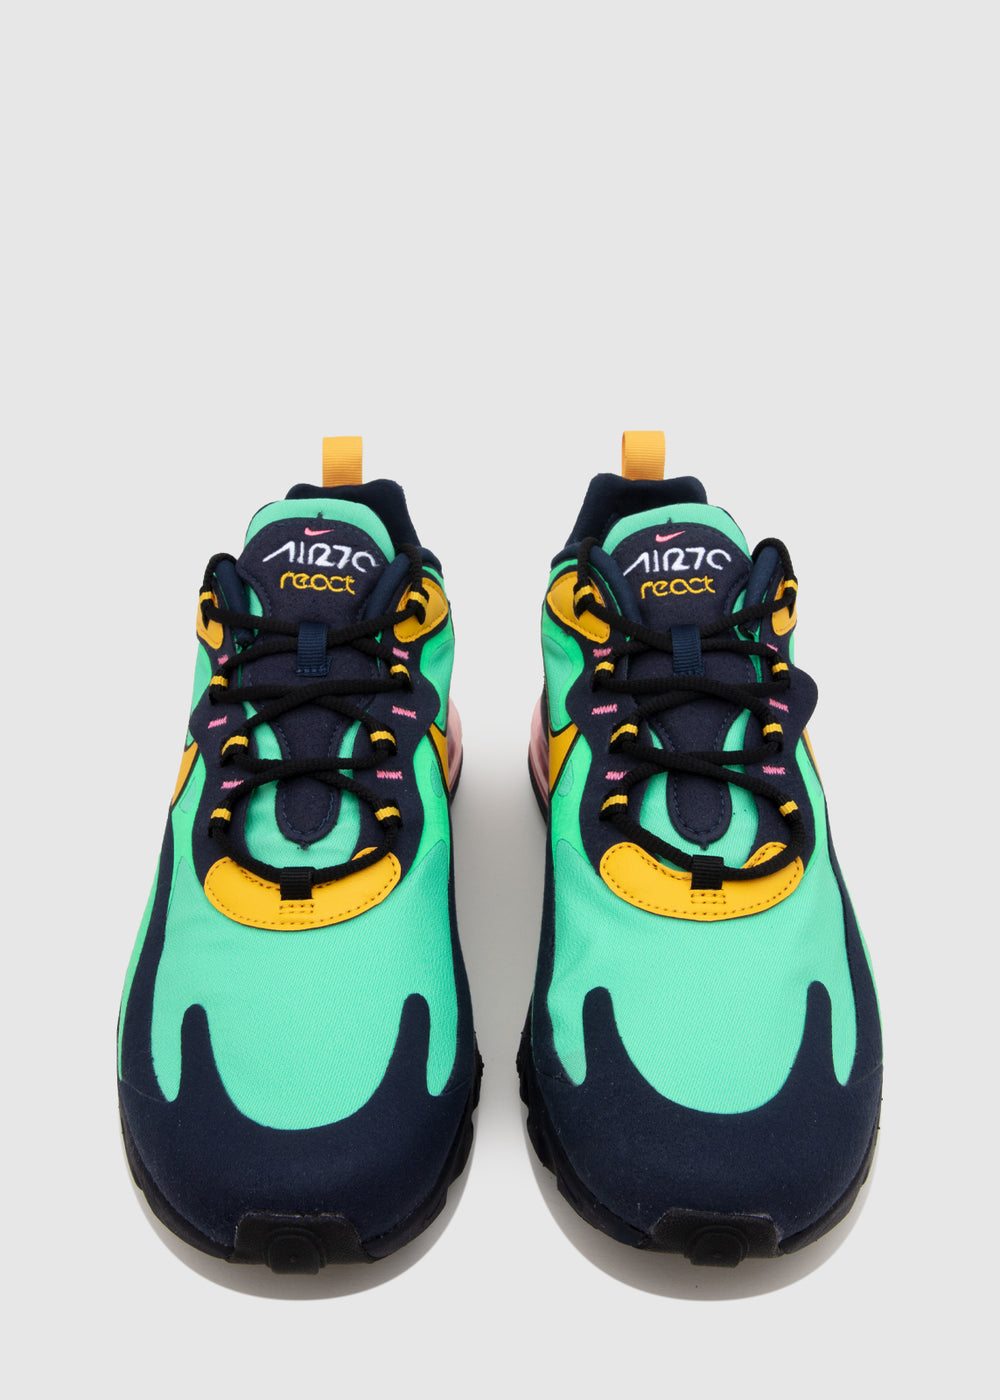 nike-air-max-270-react-pop-art-green-3